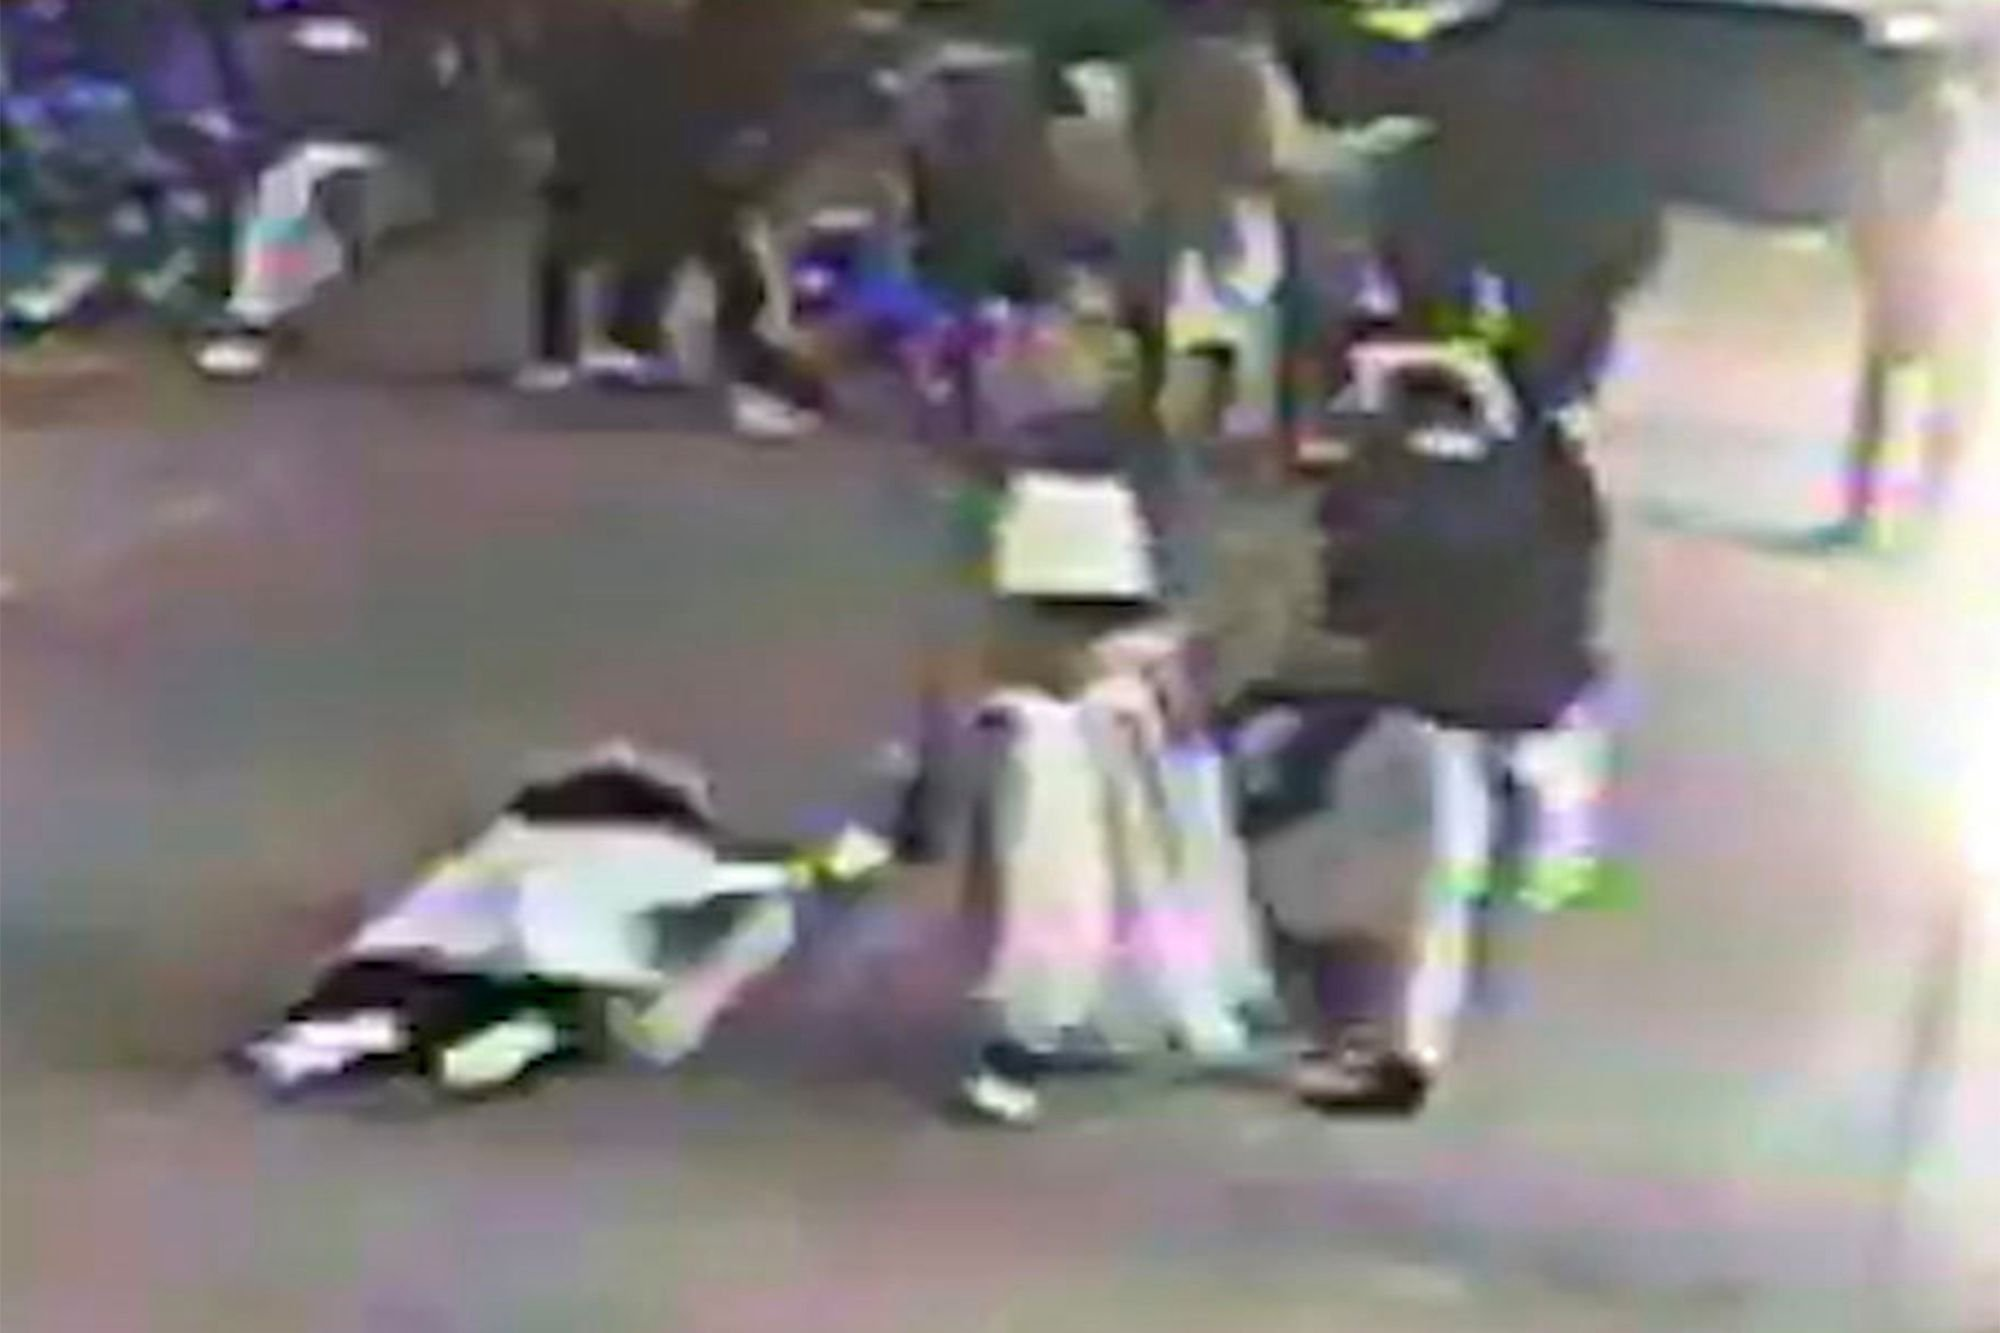 Video shows moment 8-year-old was shot while trick-or-treating